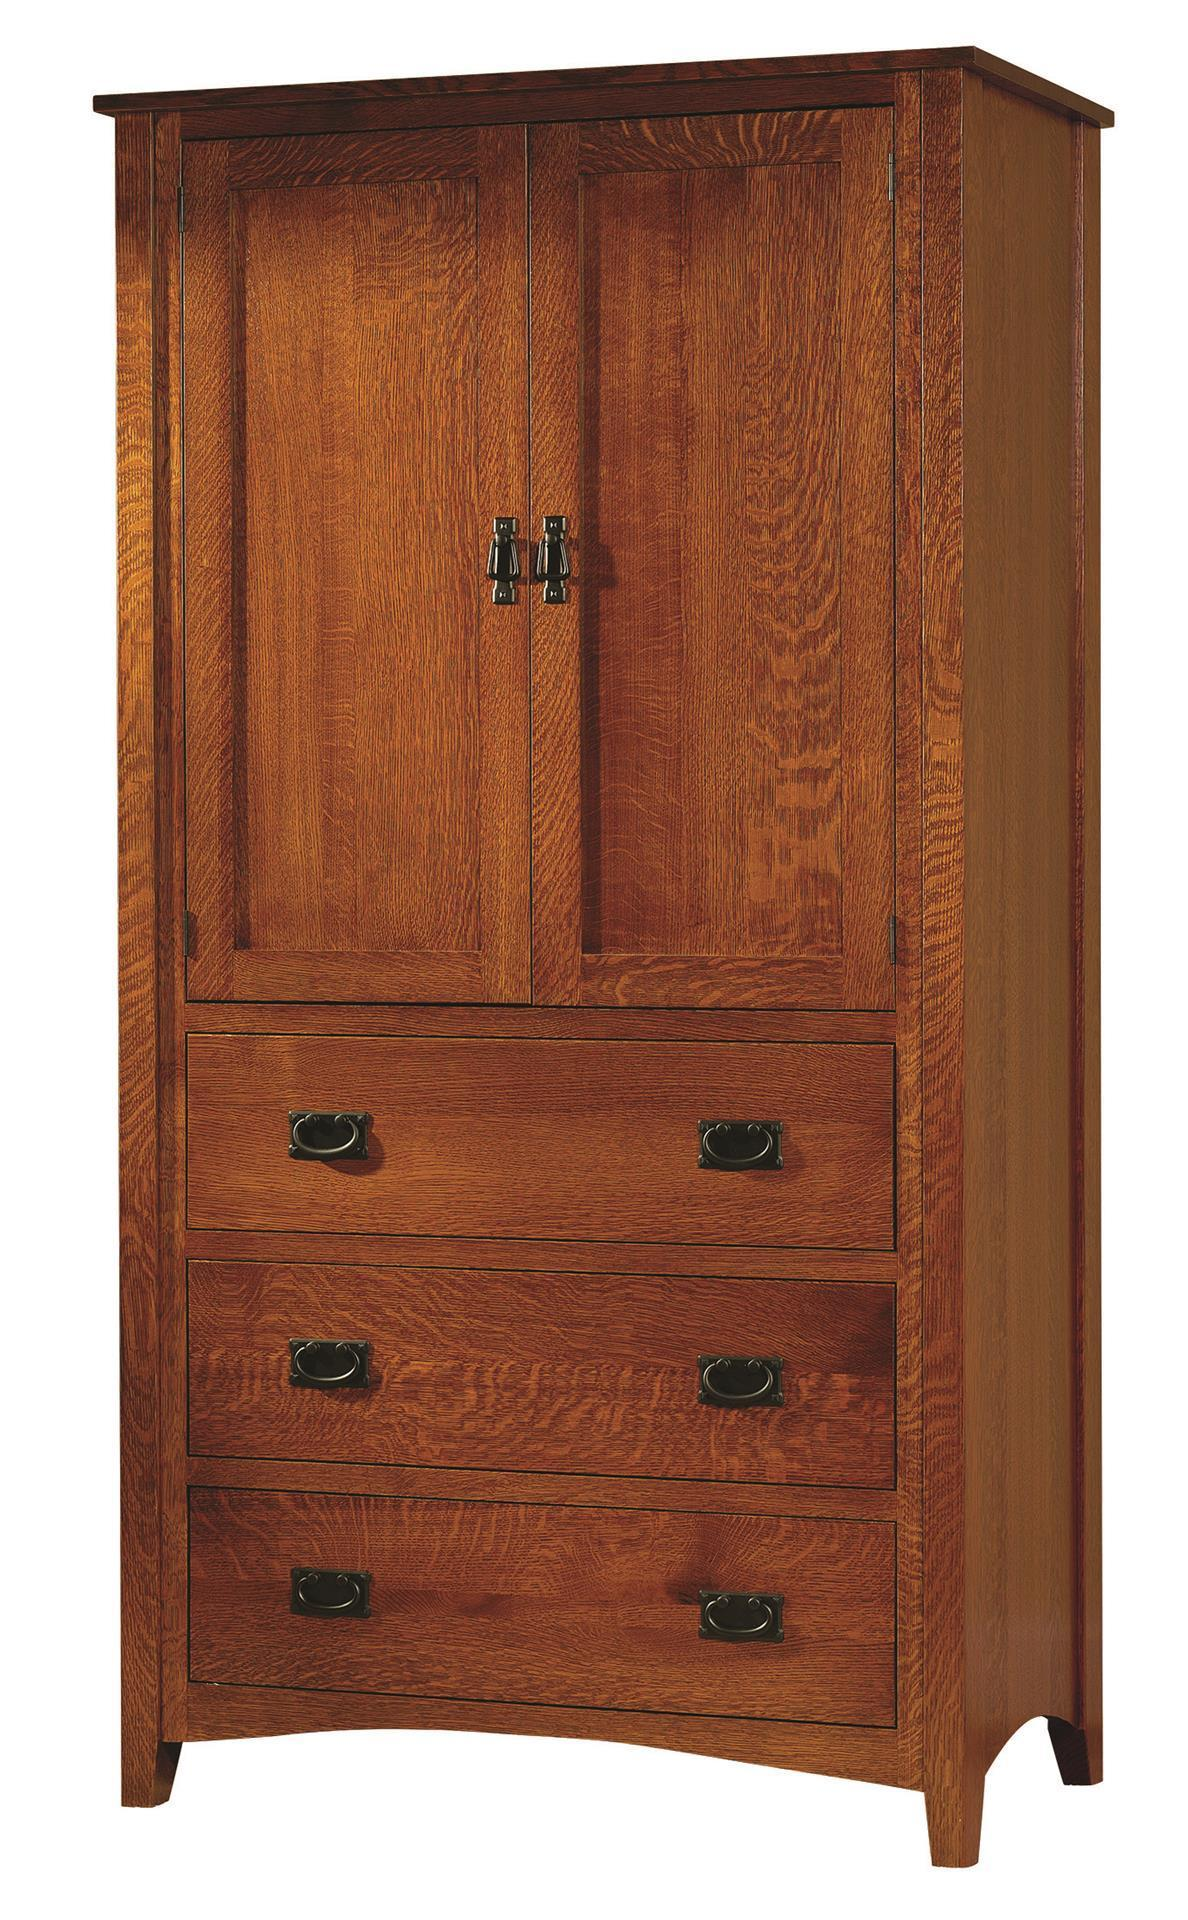 Mission Antique Armoire from DutchCrafters Amish Furniture